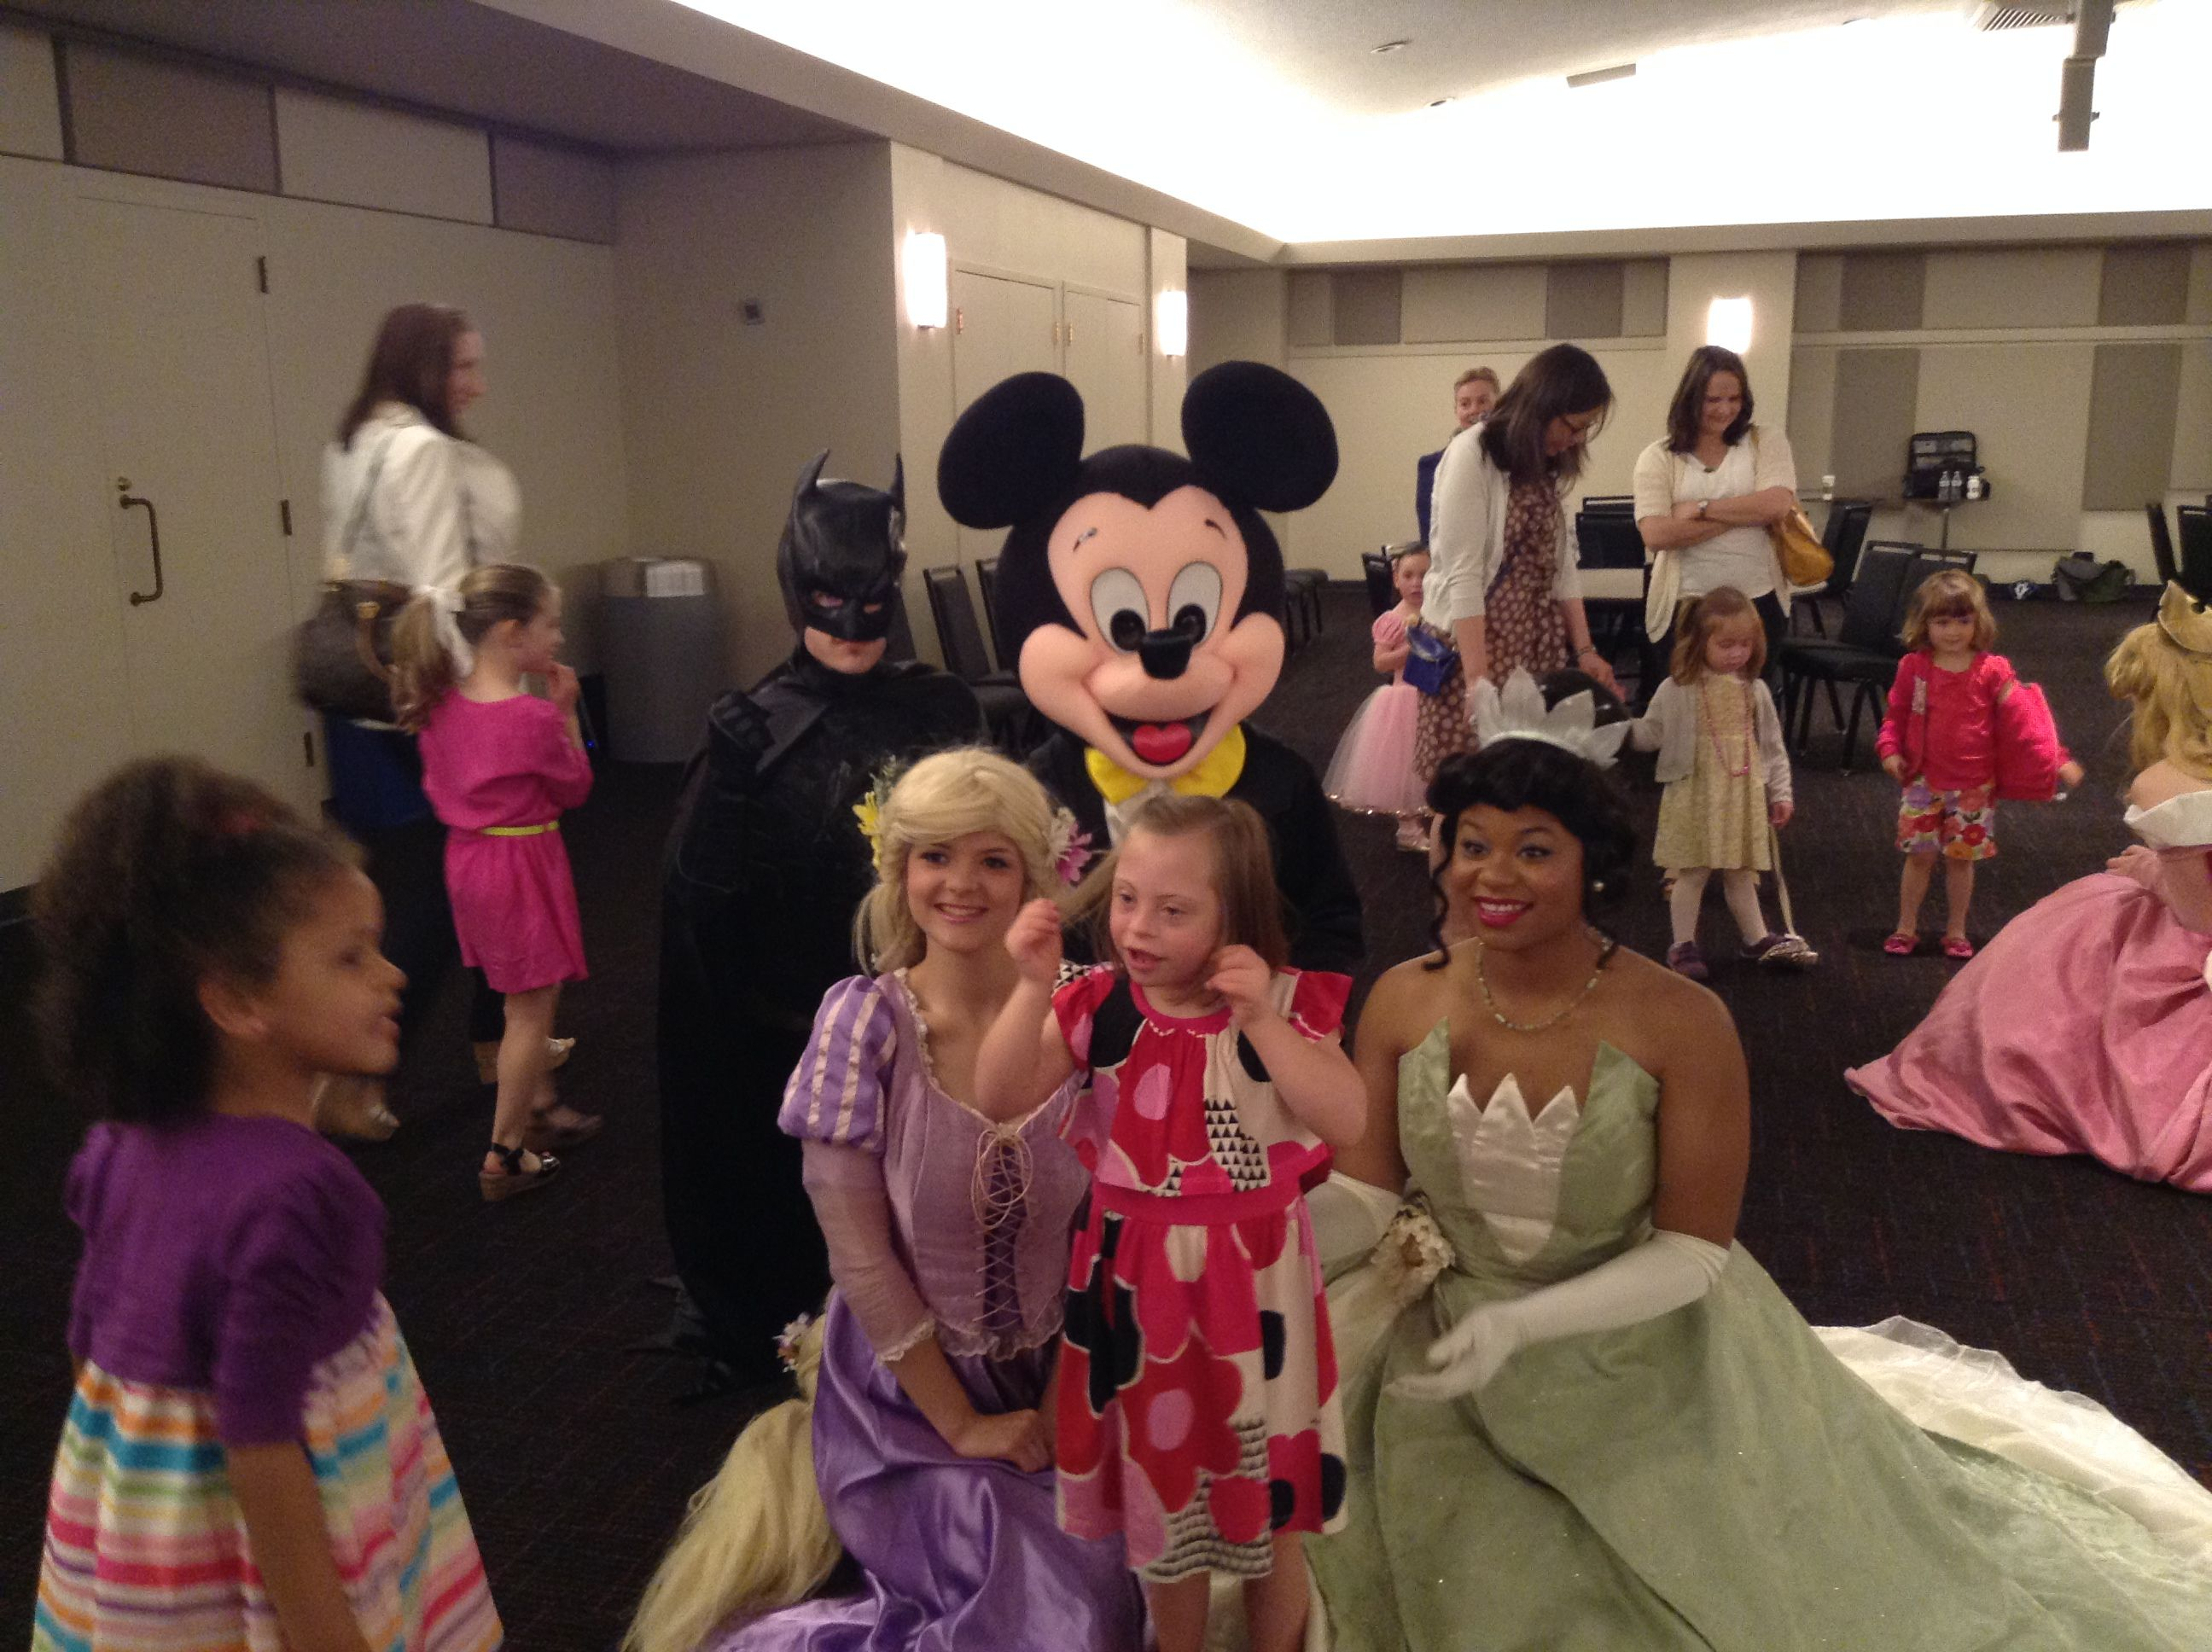 Indy Characters & More LLC and Happily Ever After Productions